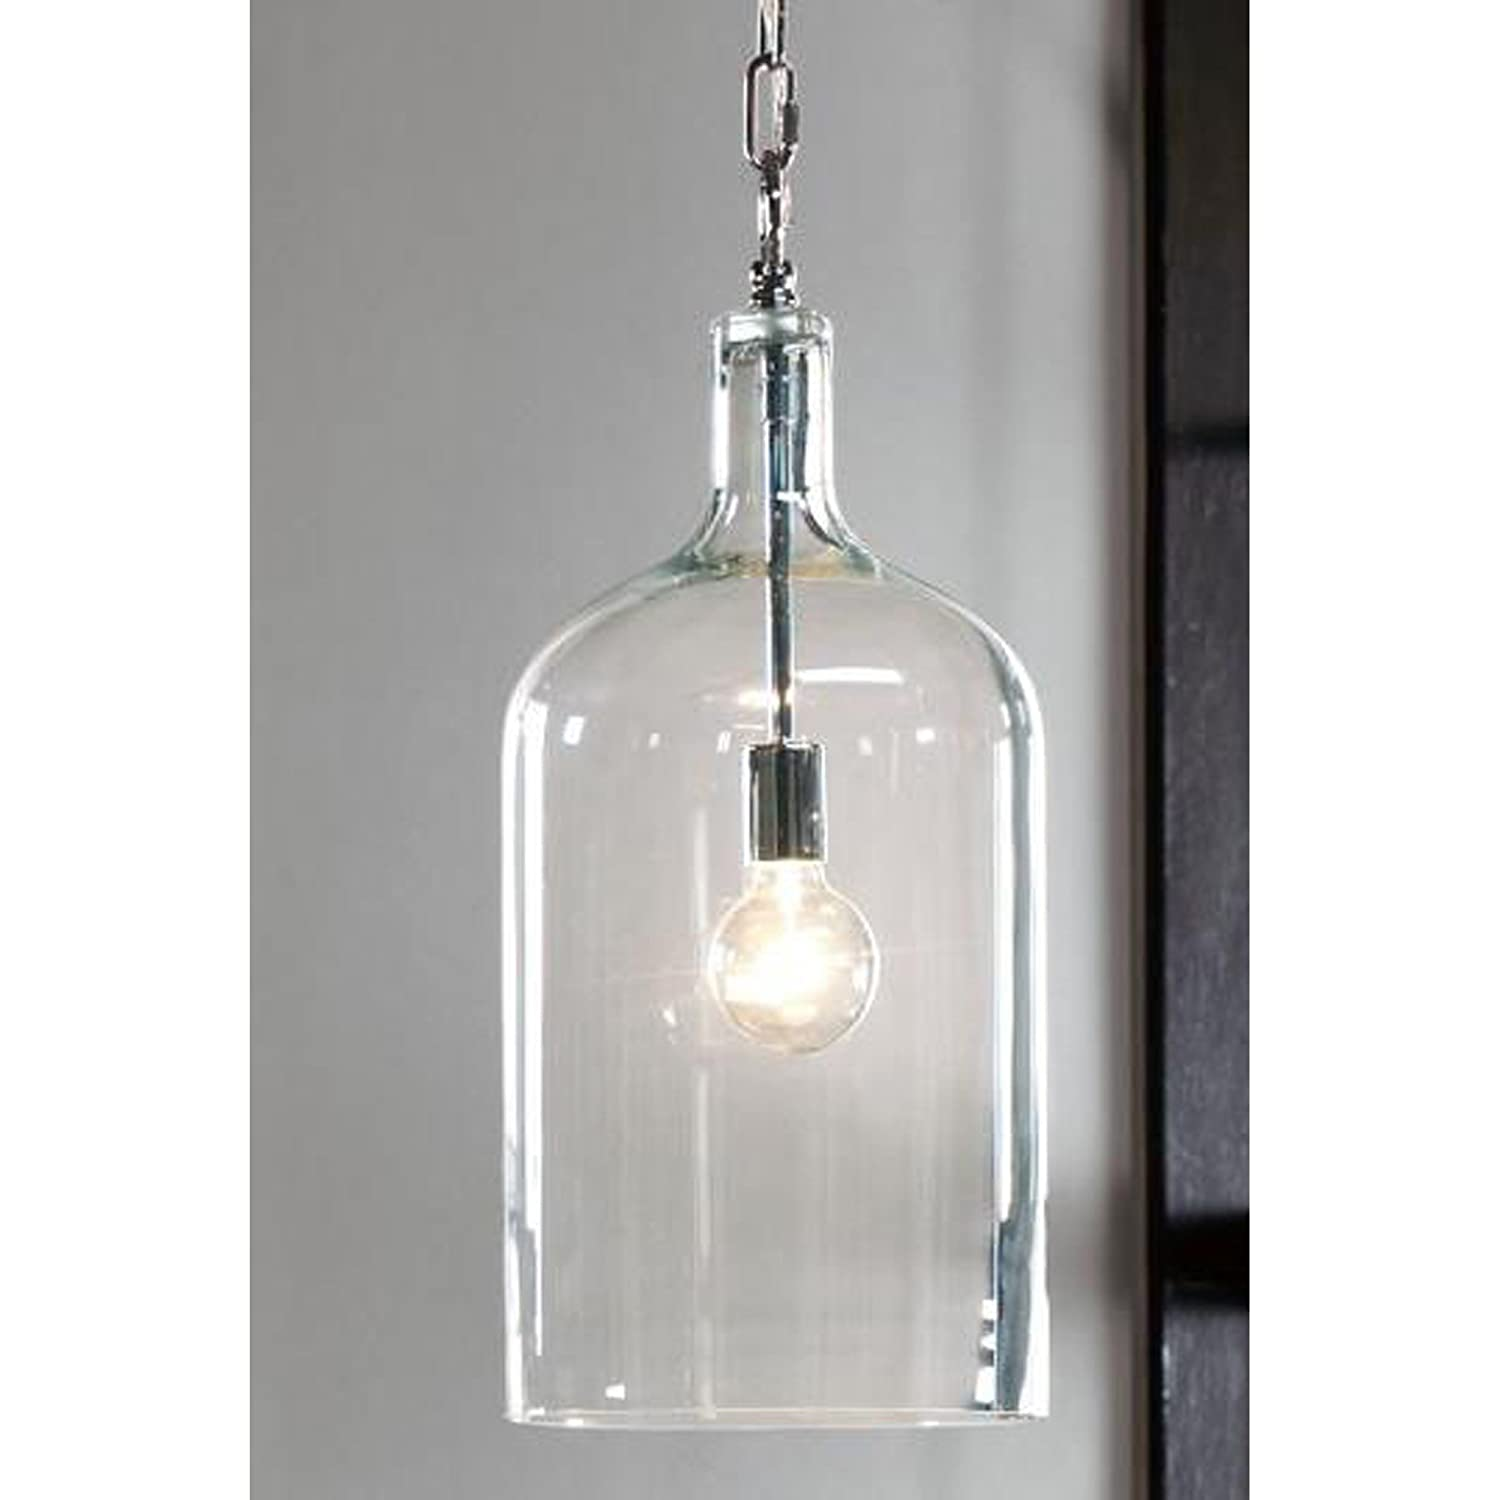 Kenroy Home CLR Capri 1 Light Pendant Clear Finish Ceiling